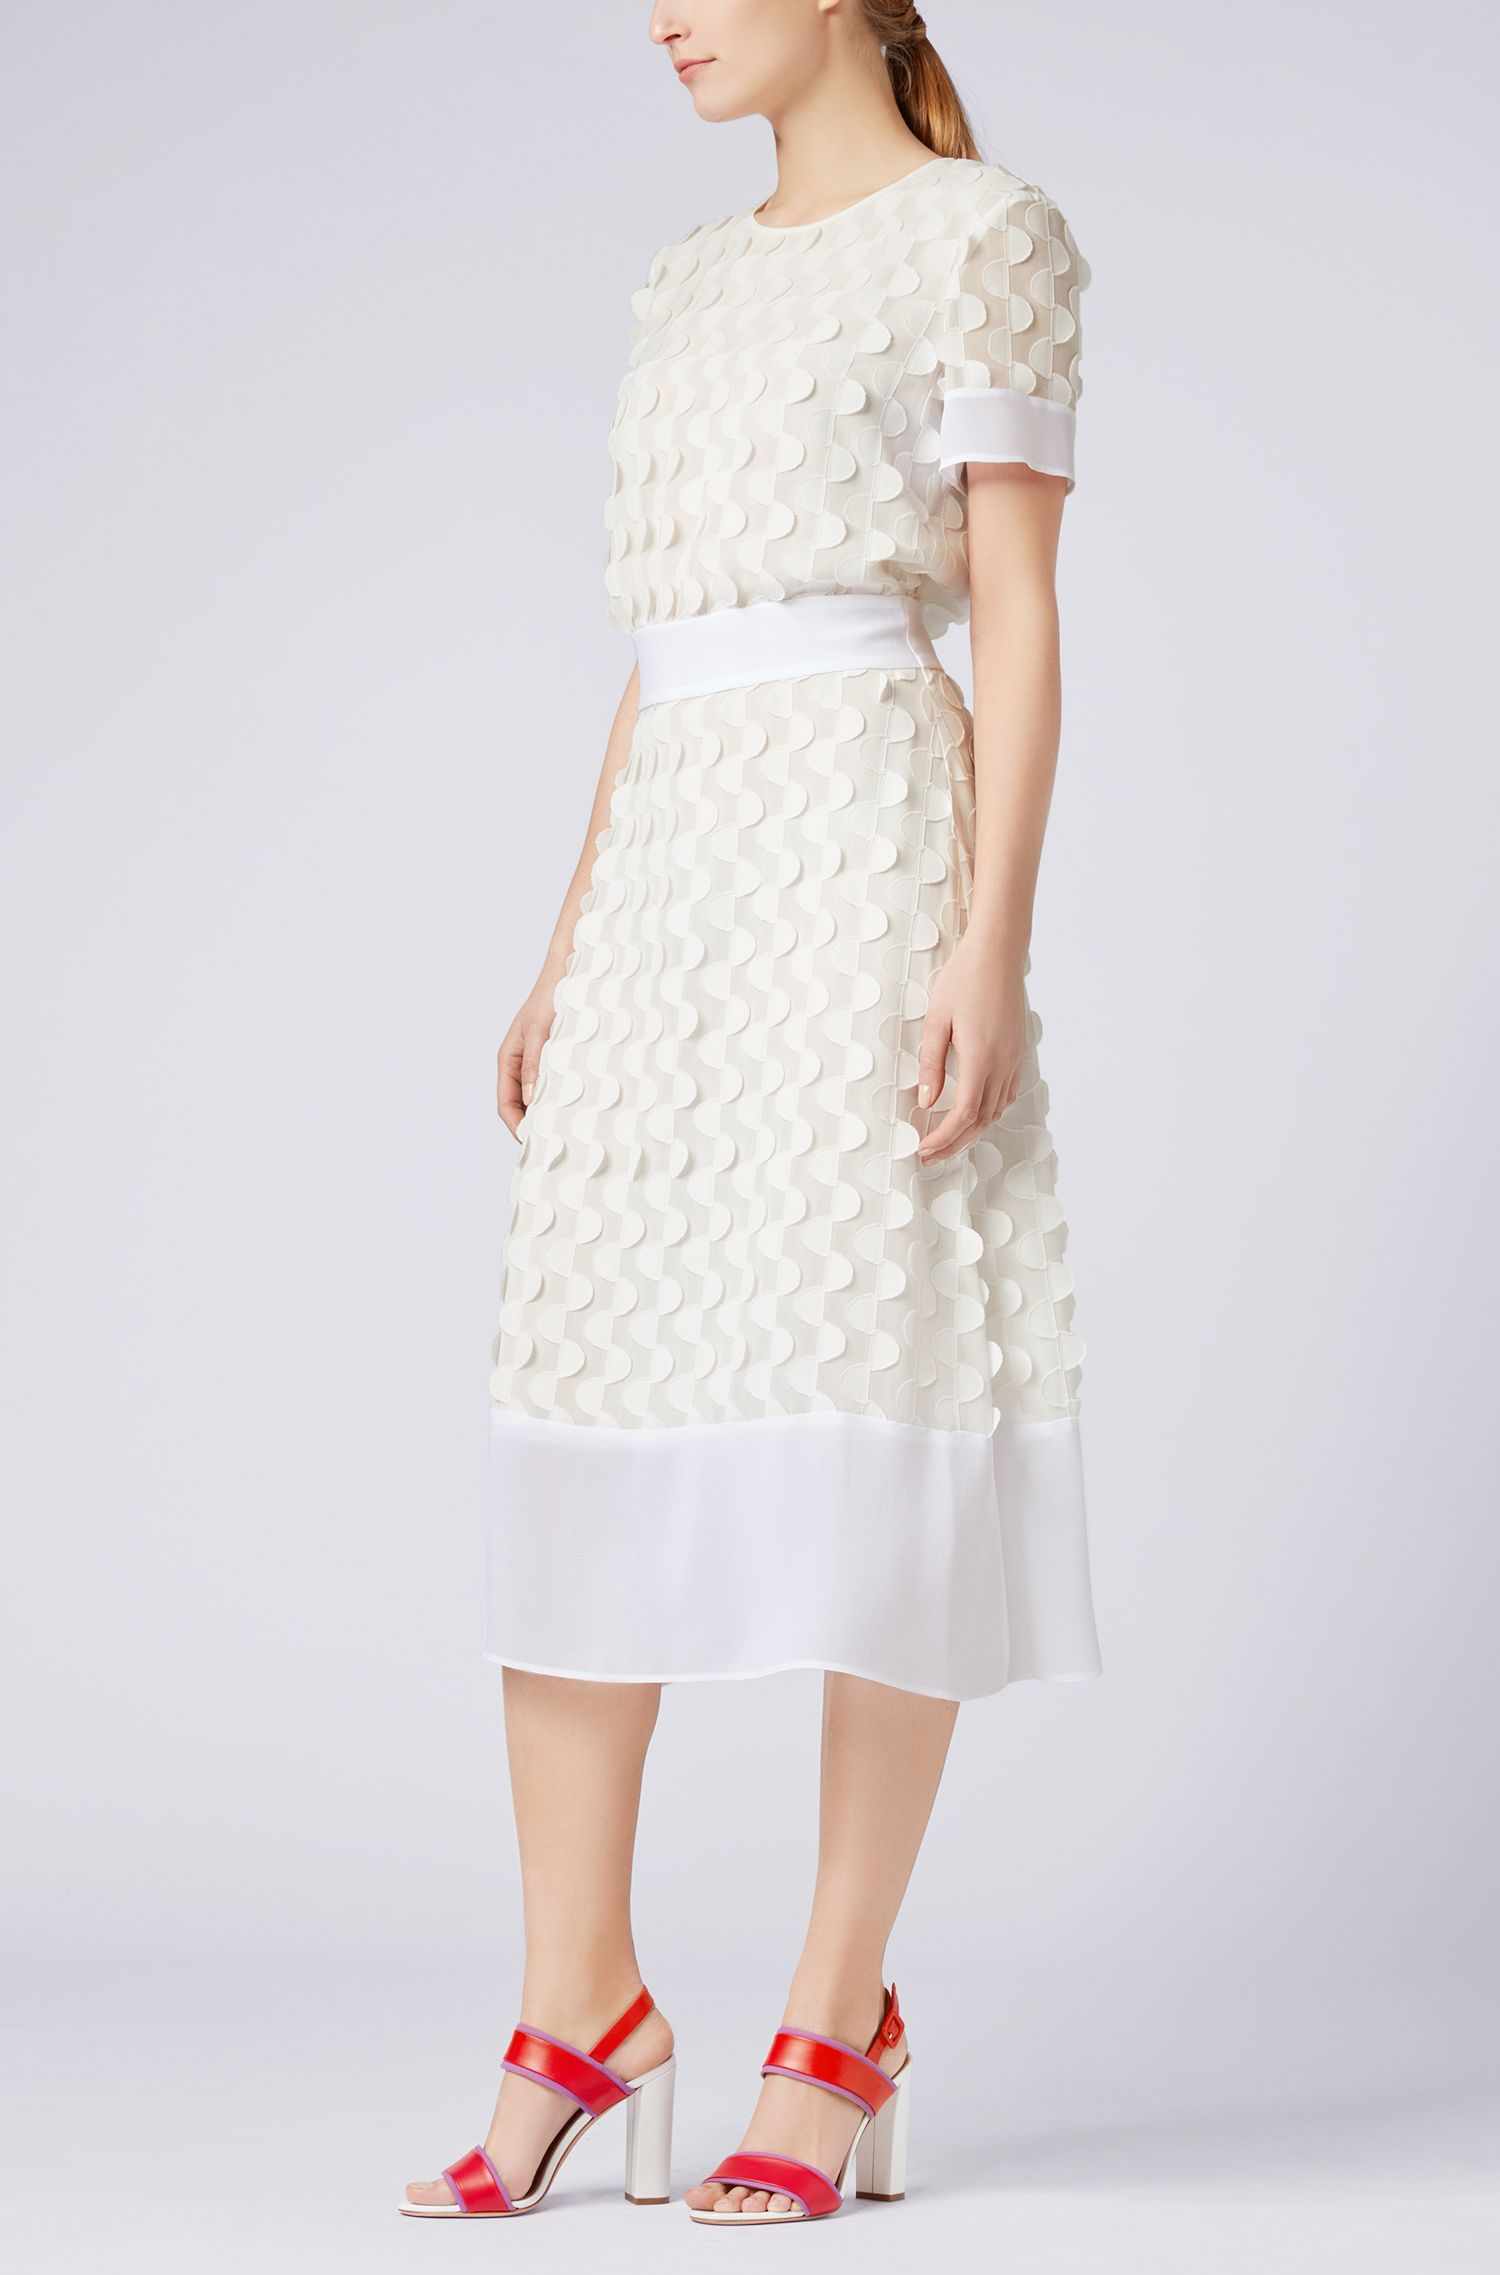 Short-sleeved dress in textured-effect crepe georgette